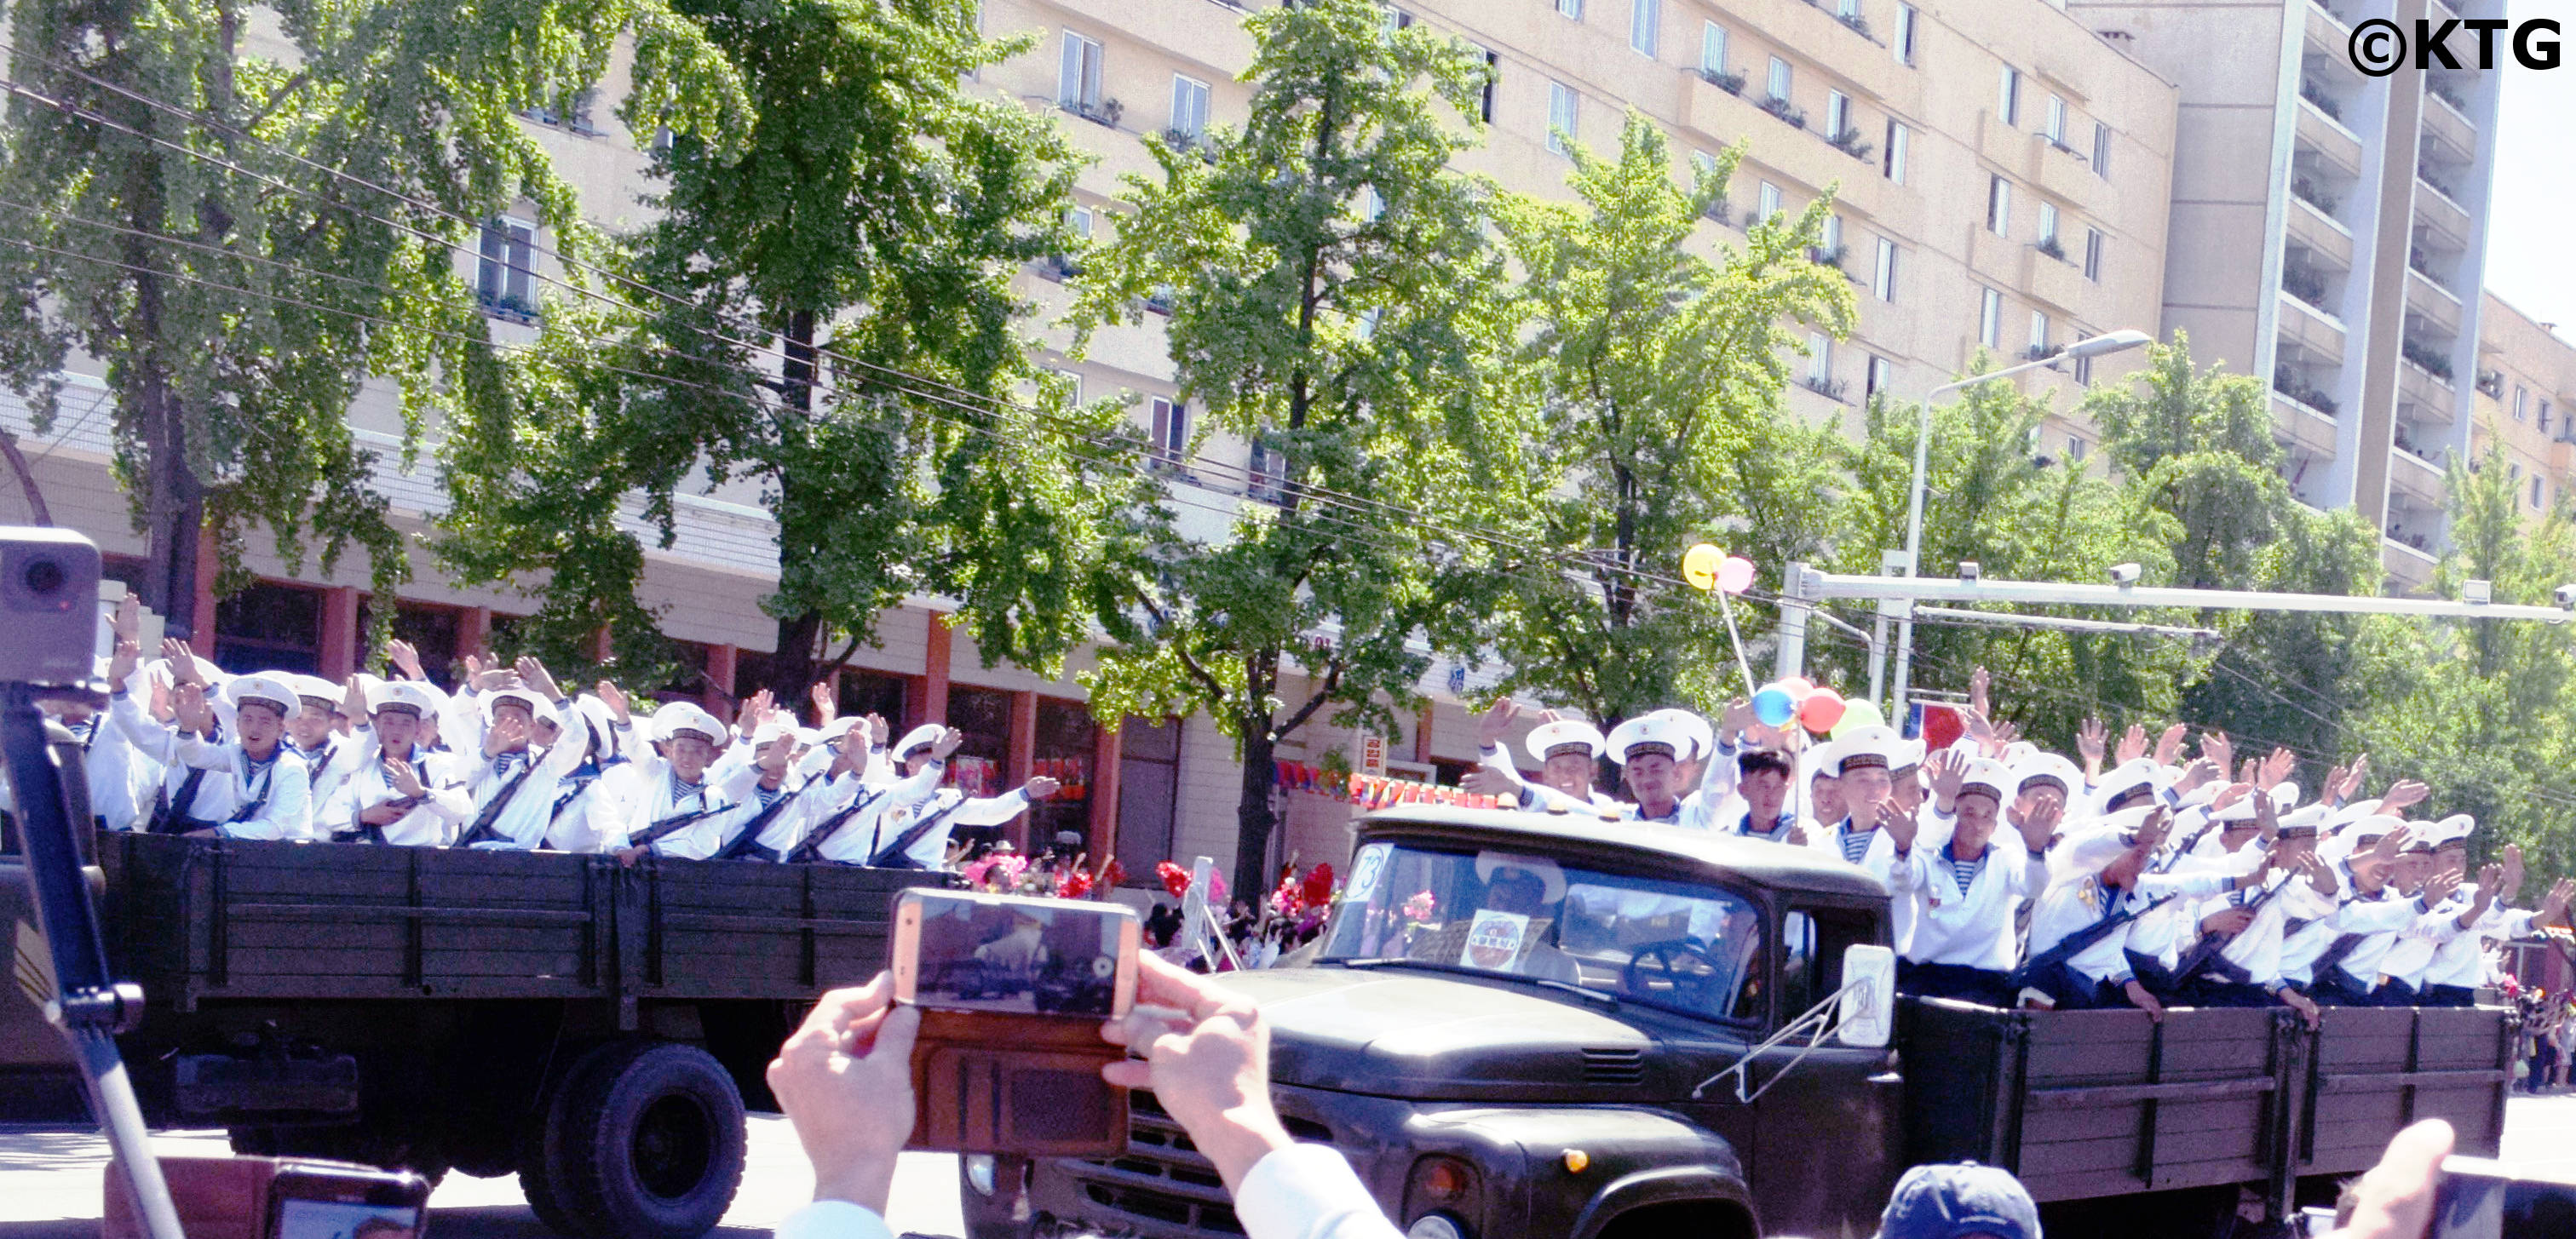 North Korean navy in a military parade. KTG Tours